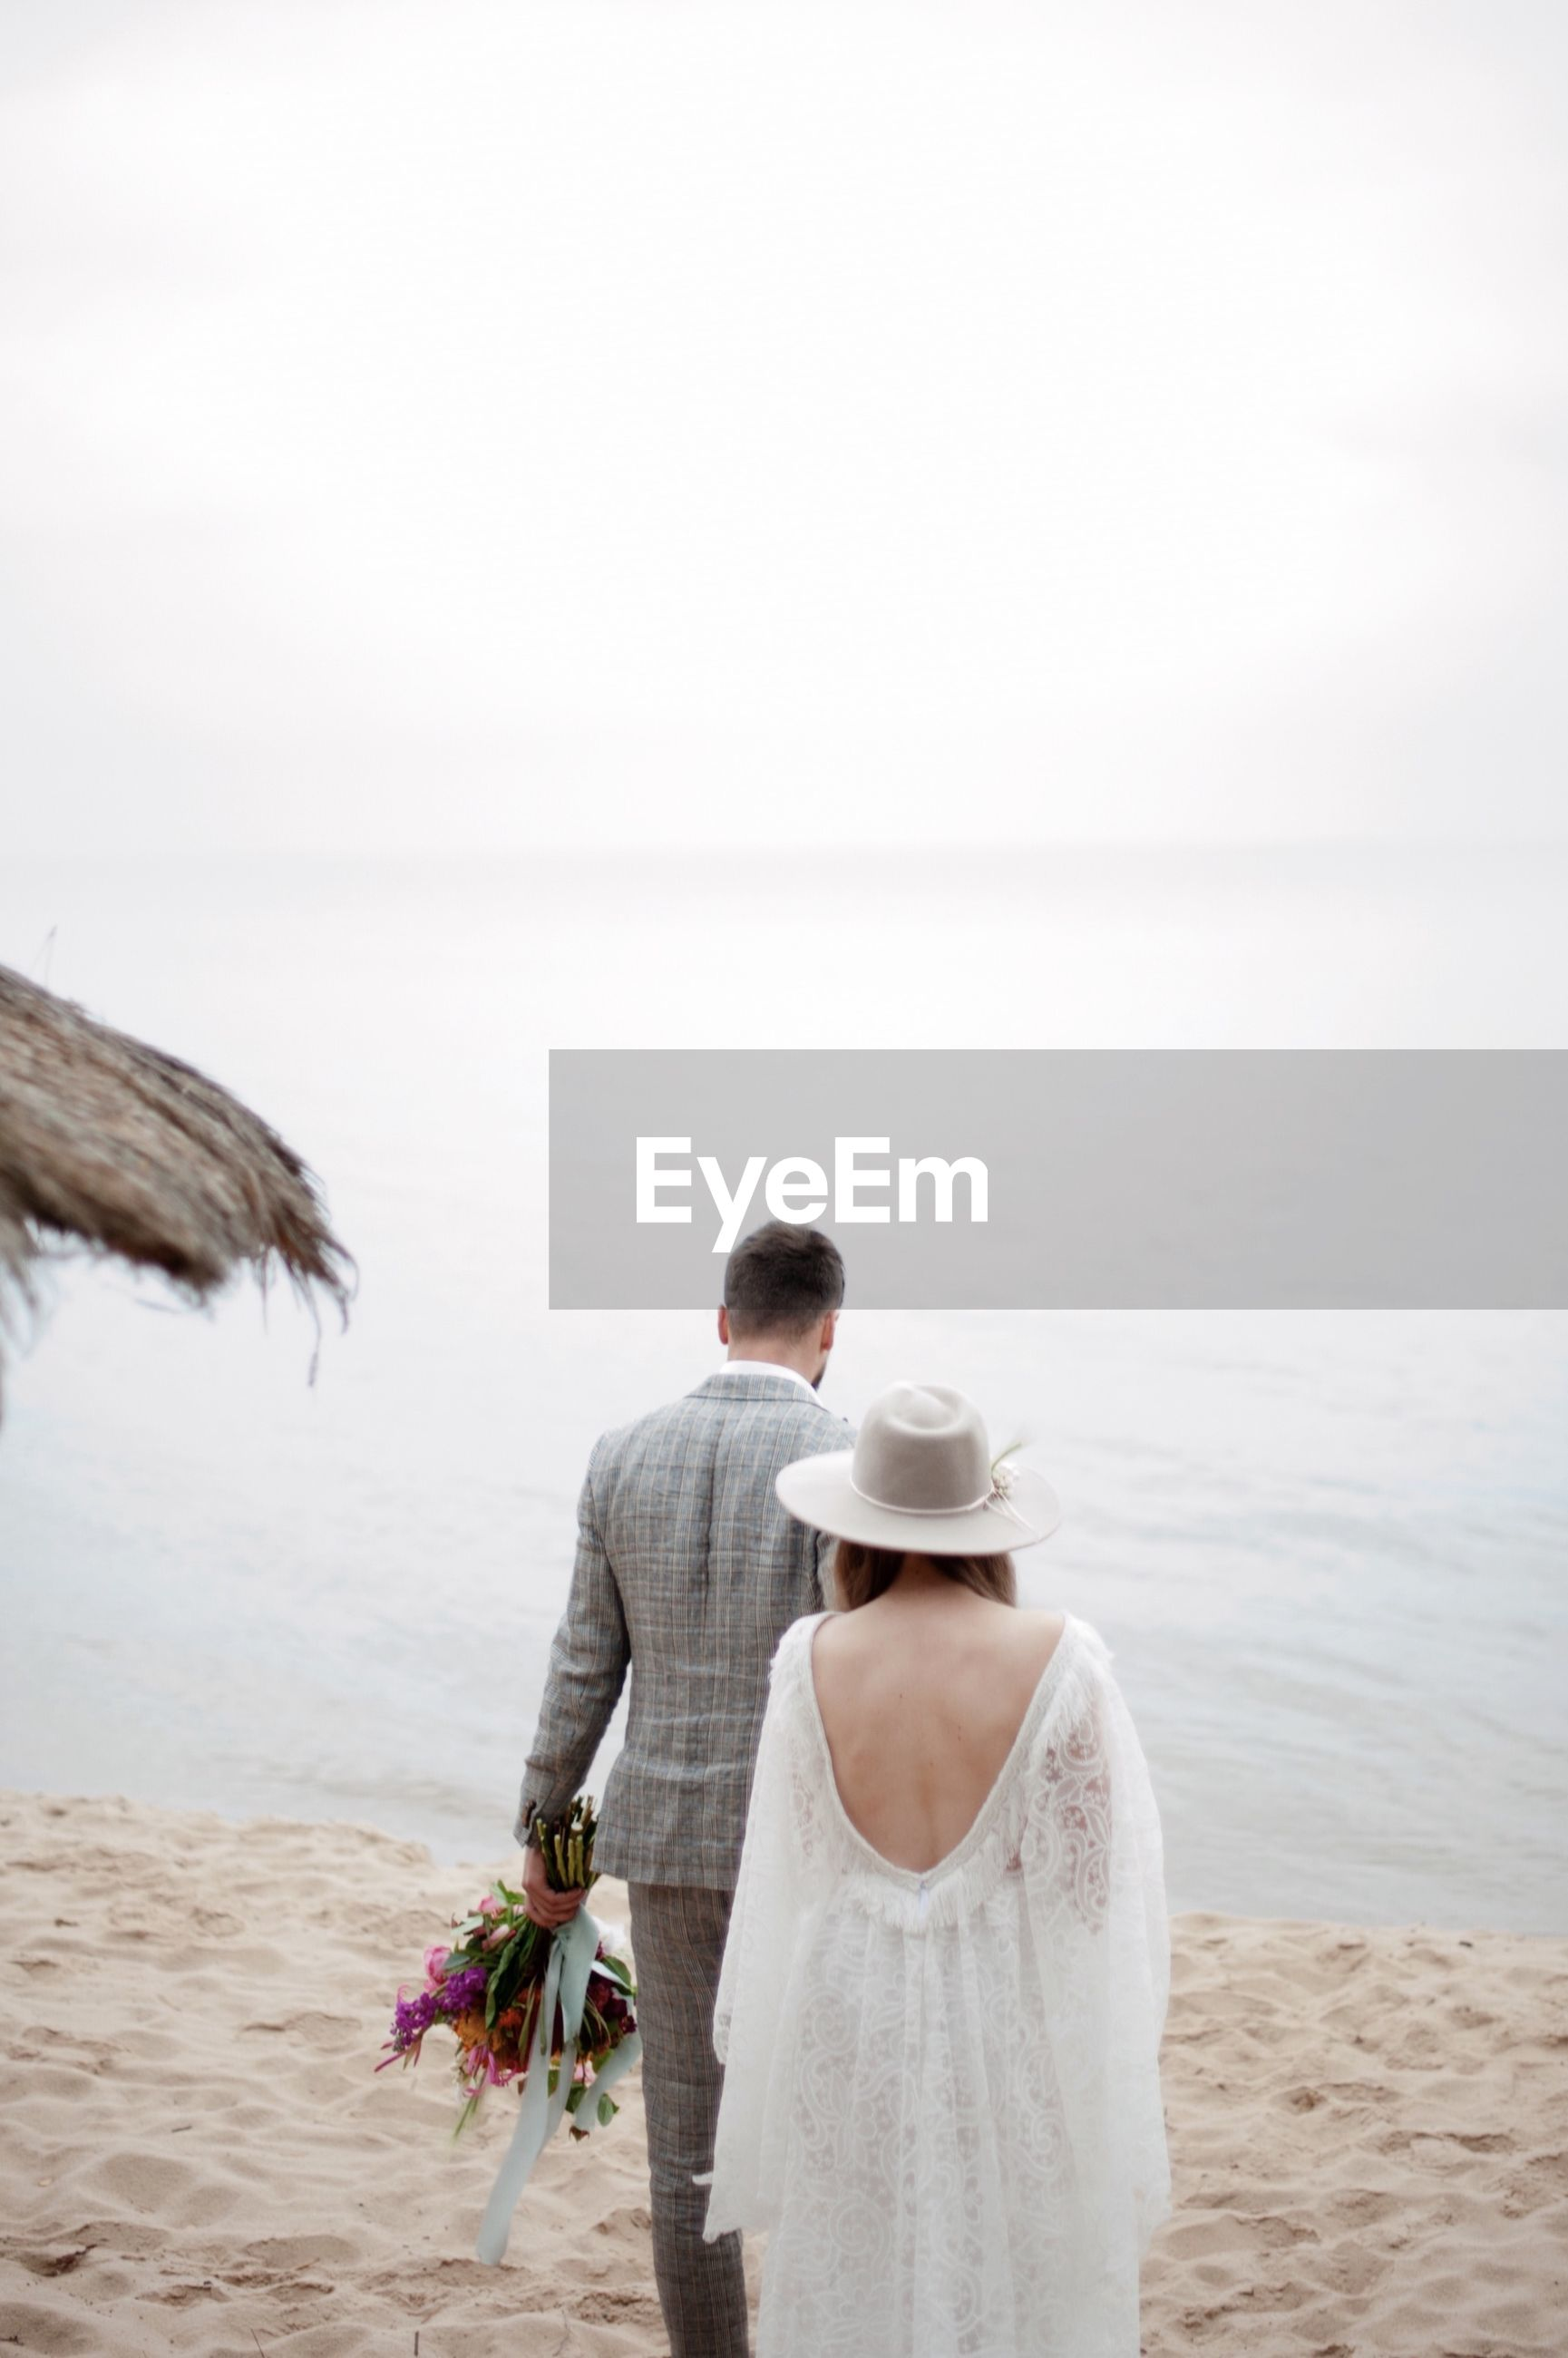 Rear view of romantic newlywed couple walking at beach against sky